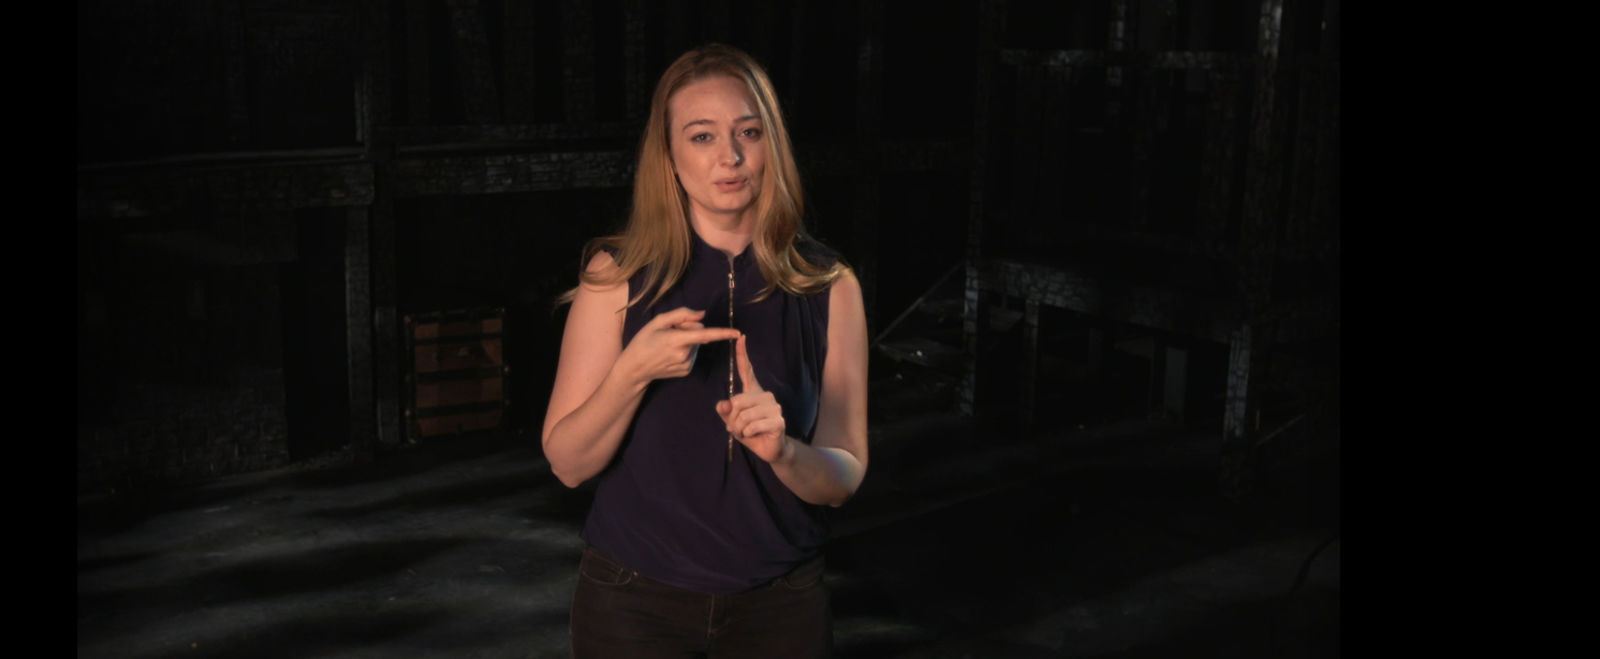 A woman uses American sign language on stage.